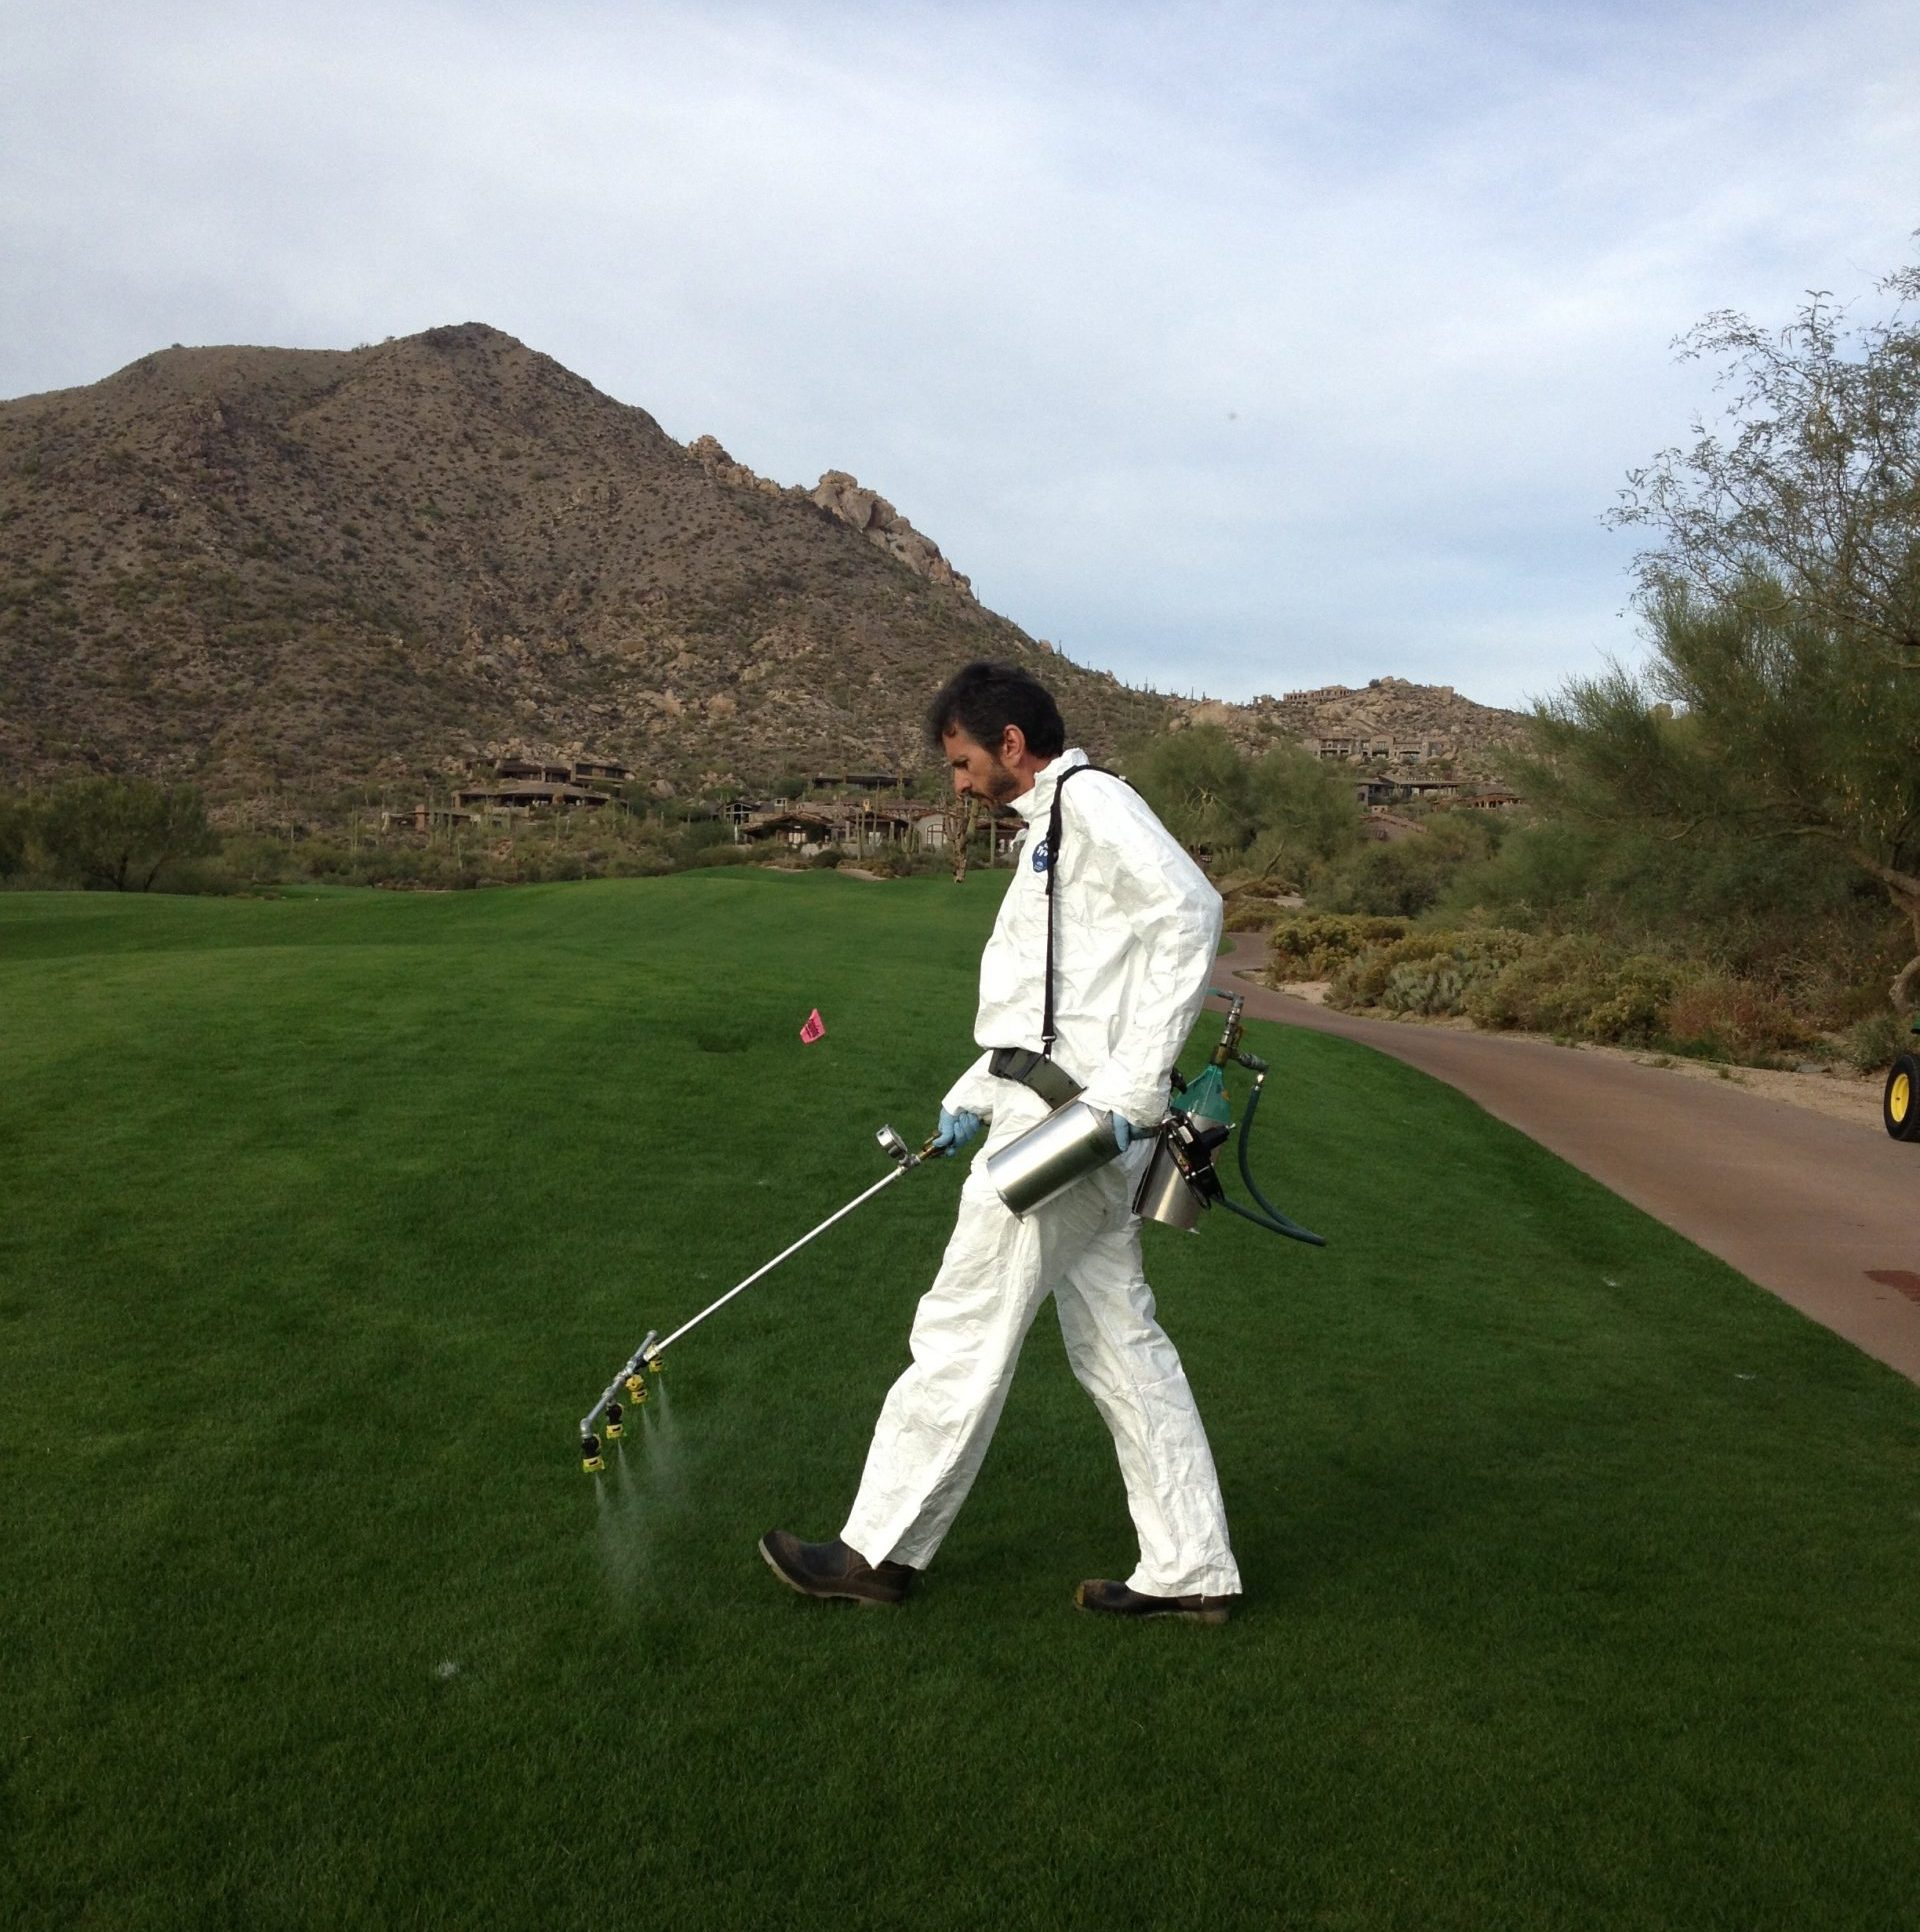 Man in white coveralls spraying turfgrass